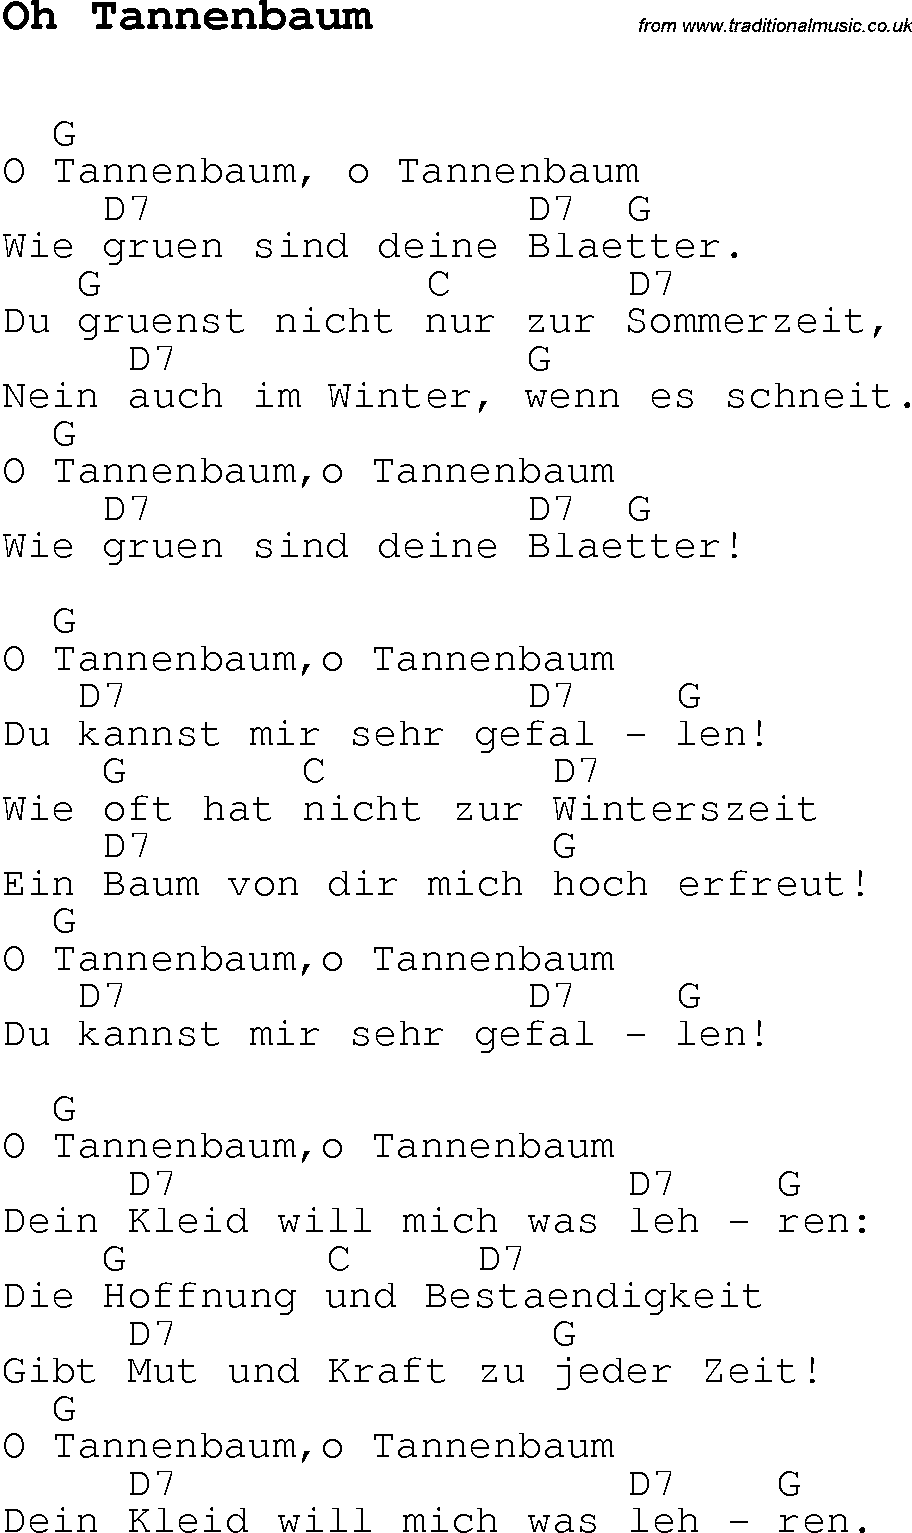 Christmas Carol/Song lyrics with chords for Oh Tannenbaum